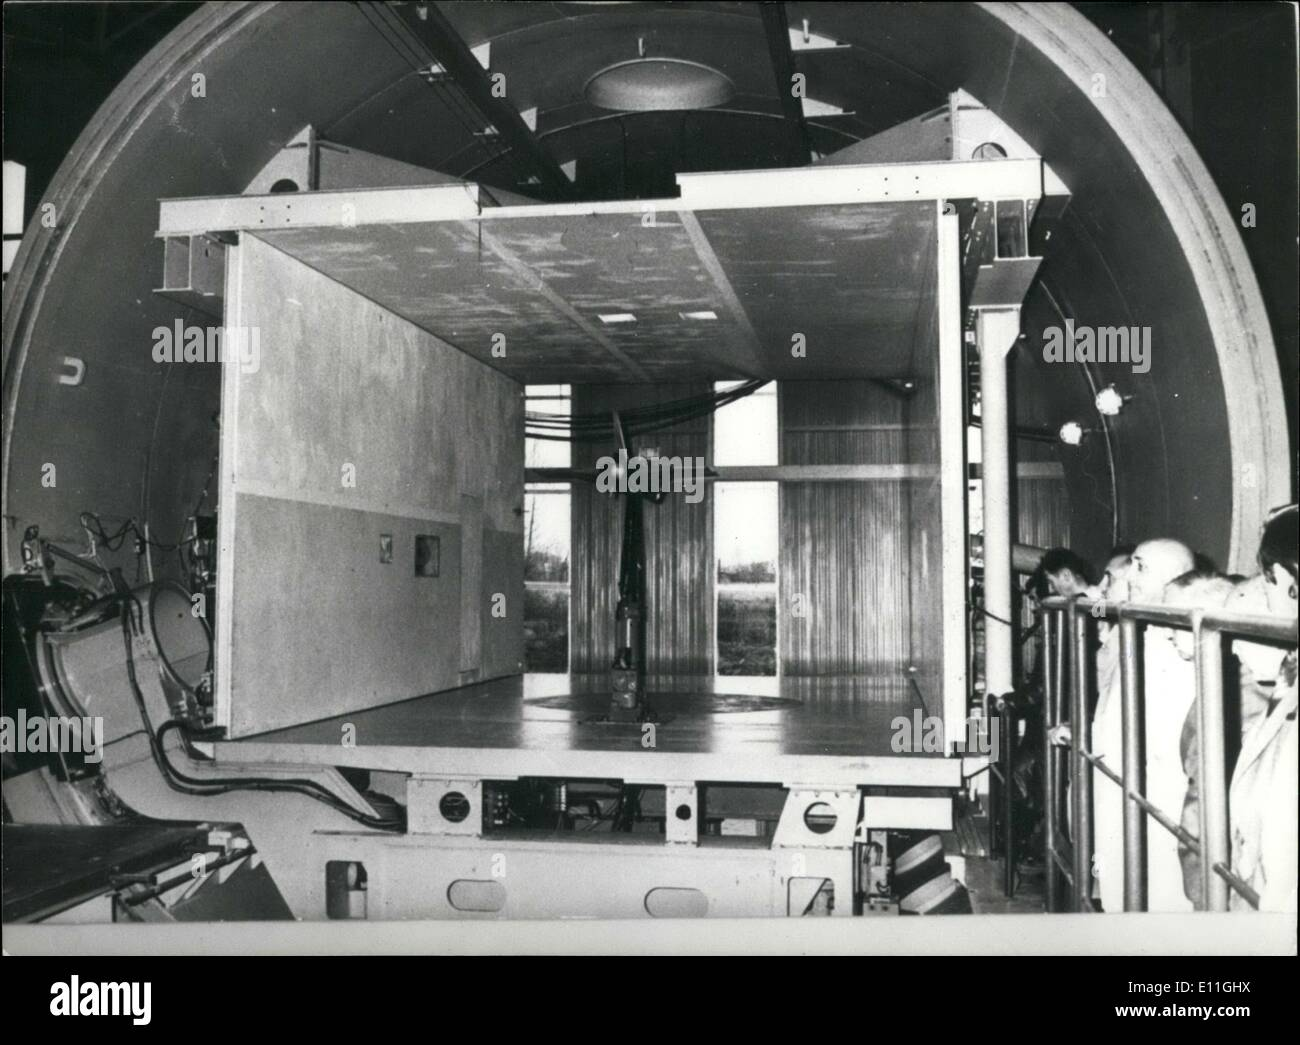 Nov. 21, 1977 - Largest Windtunnel in Europe: F-1 Windtunnel Stock Photo